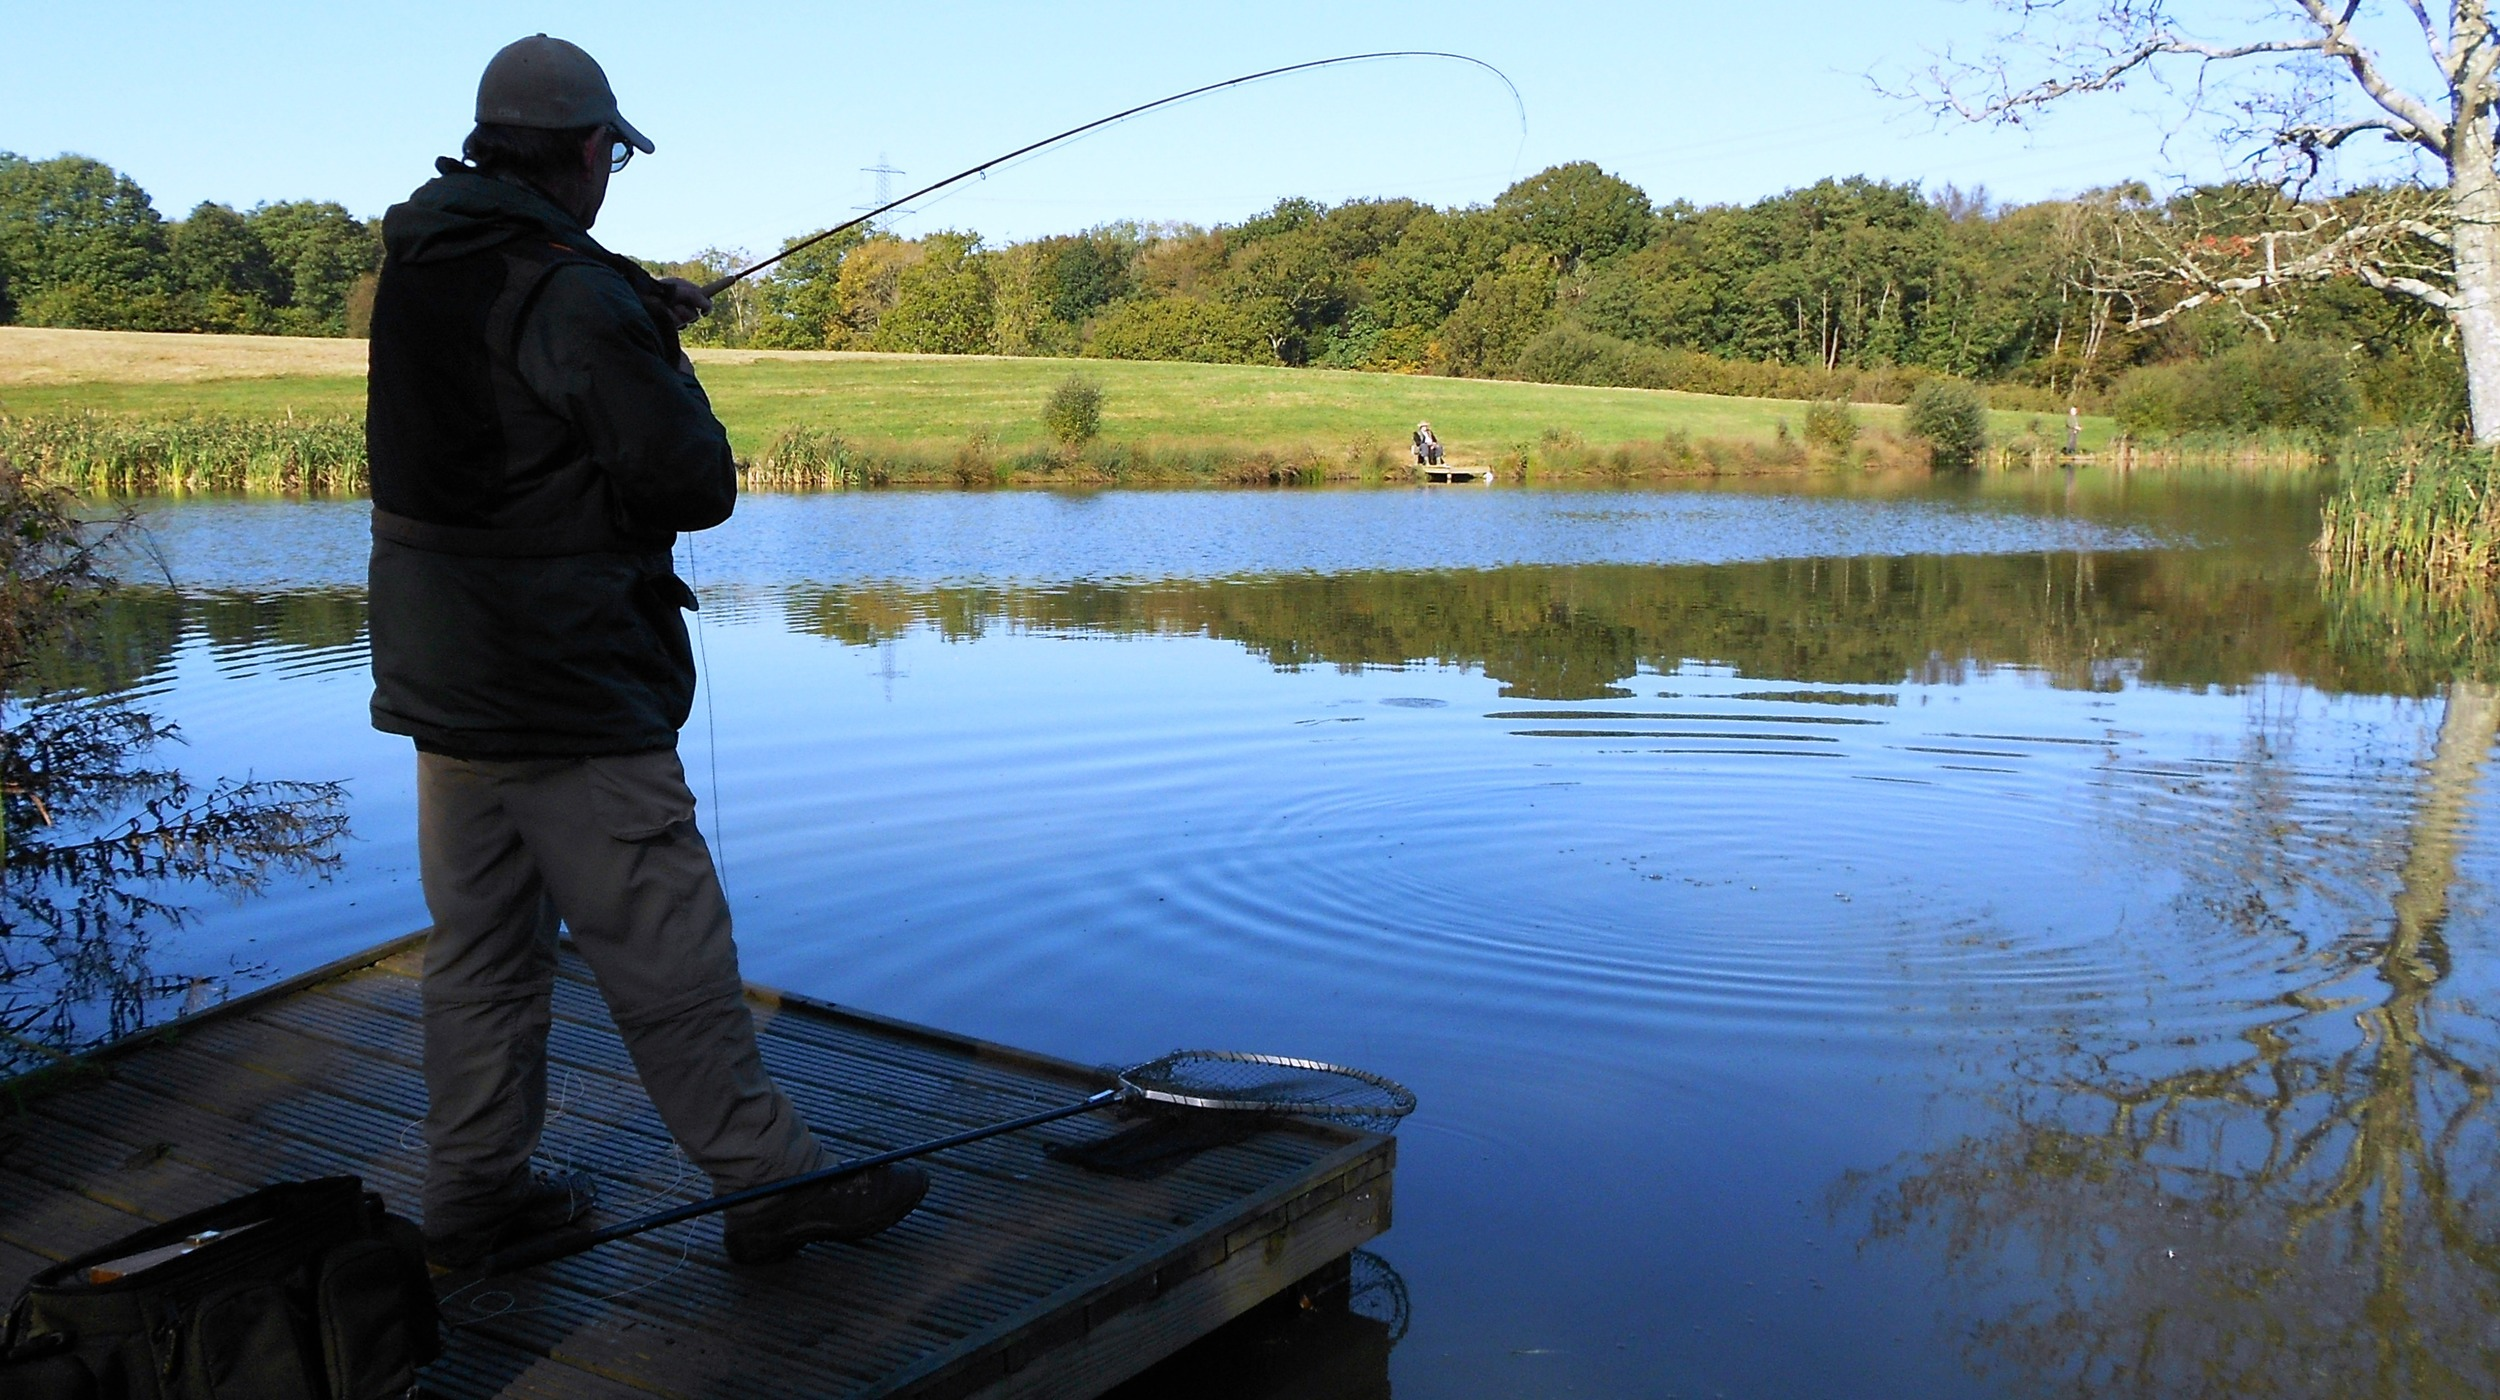 Peter Winder at the Brick Farm Lakes with the Eastbourne and District Fly Fishing Club